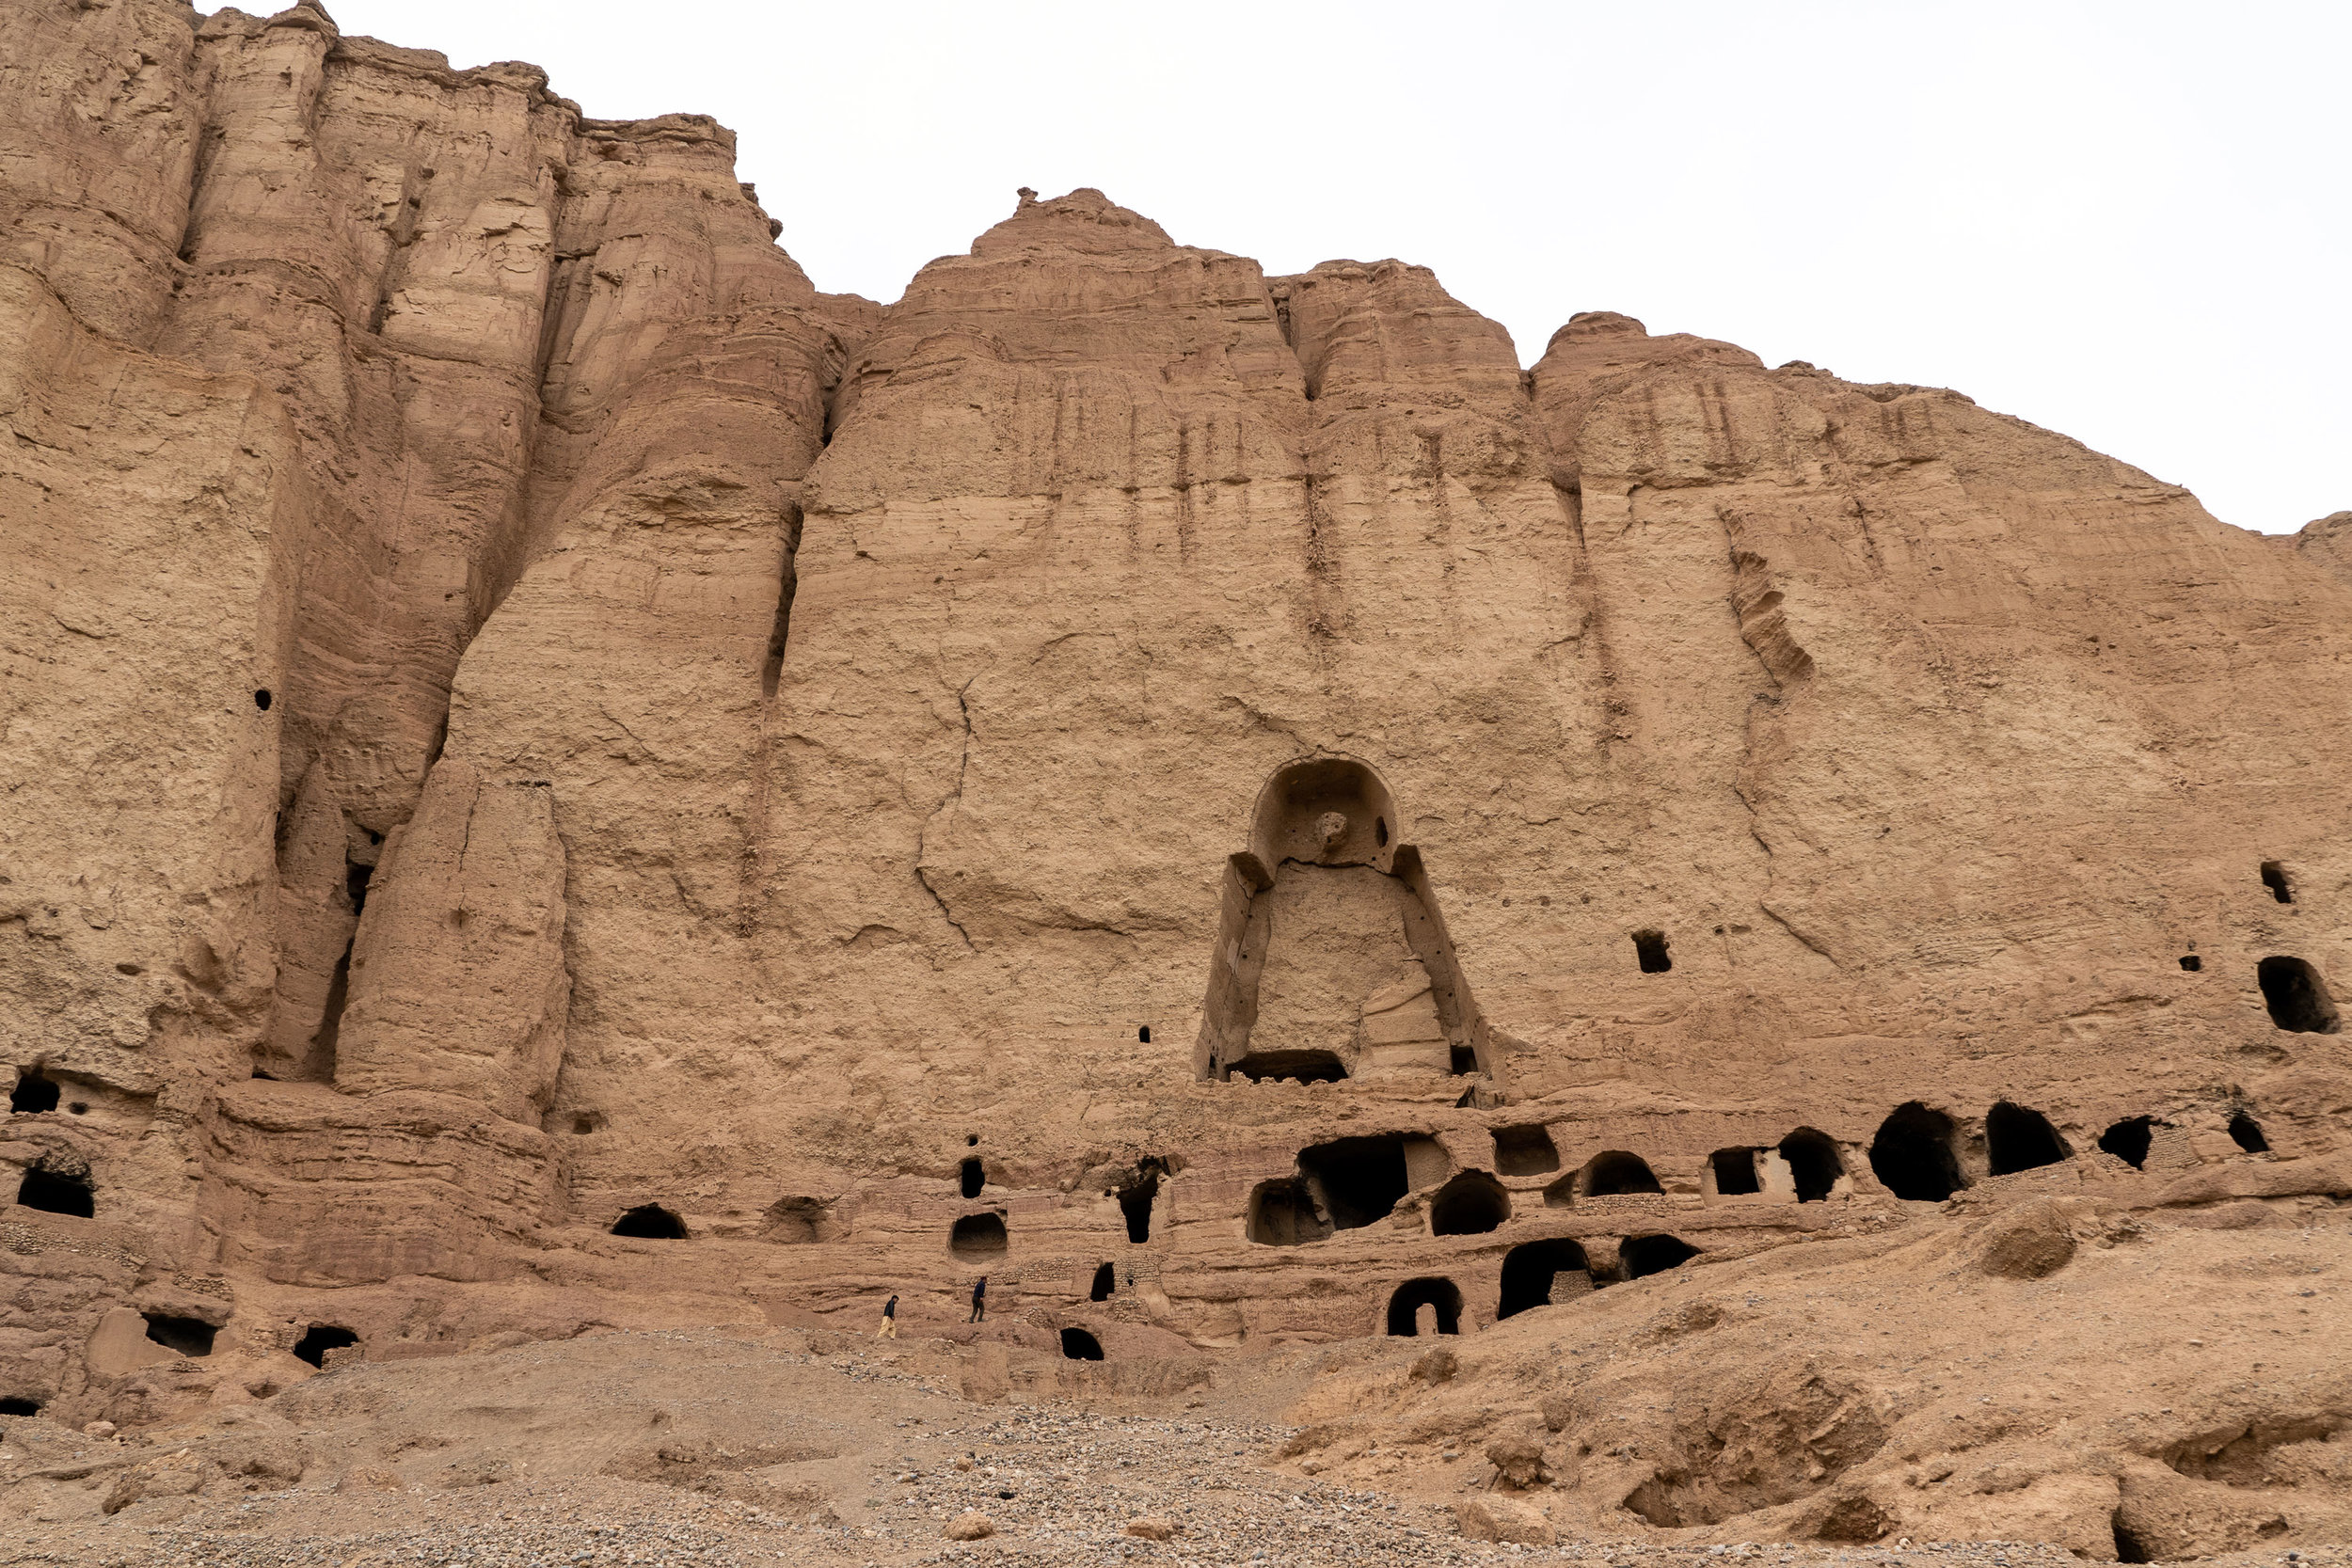 The great Buddha Niches of Bamyan were largely destroyed by the Taliban in 2001. Despite international condemnation, the Taliban destroyed this world heritage city dating back to the 5th century because they saw the statues as anti-Islamic. Today, the niches sit largely empty. Some statue outlines may be seen and remnants of colourful paintings can be found inside some of the caves. While others are covered in ash from people having been living in them and others in graffiti and footprints defacing some of the ancient Buddhist paintings.